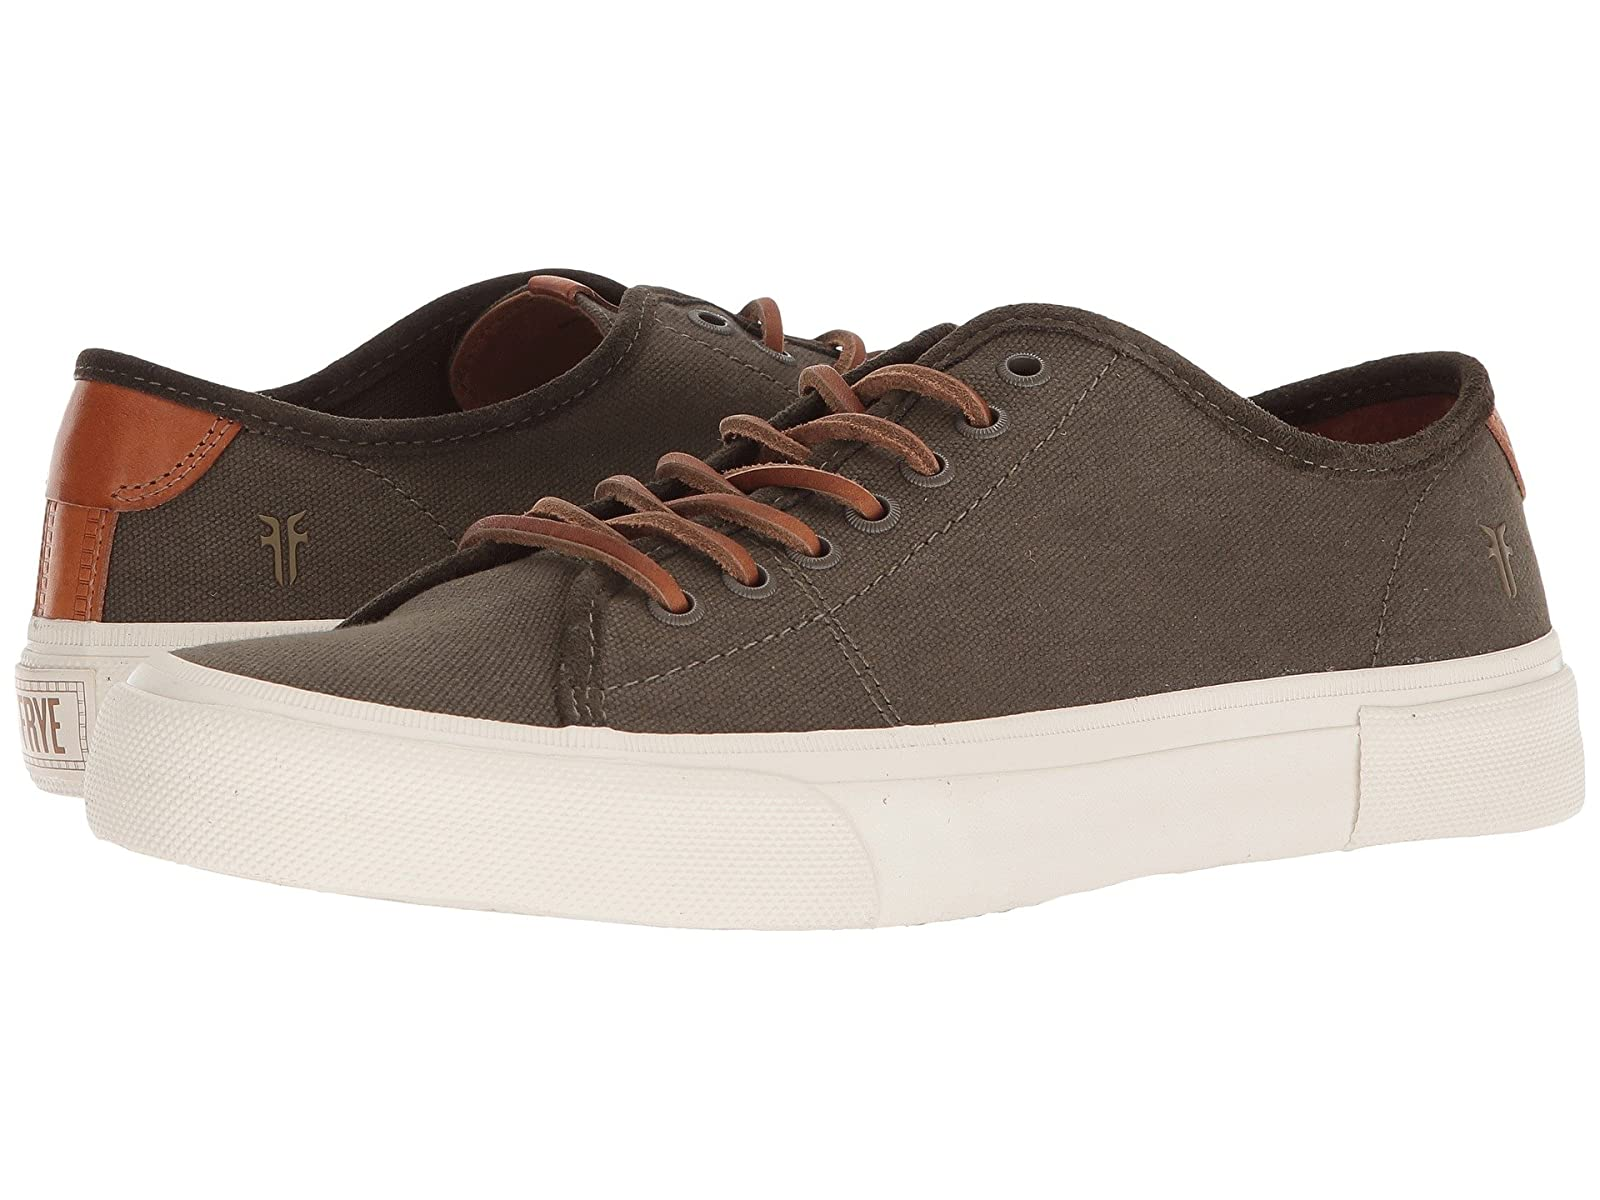 Frye Ludlow LowAtmospheric grades have affordable shoes